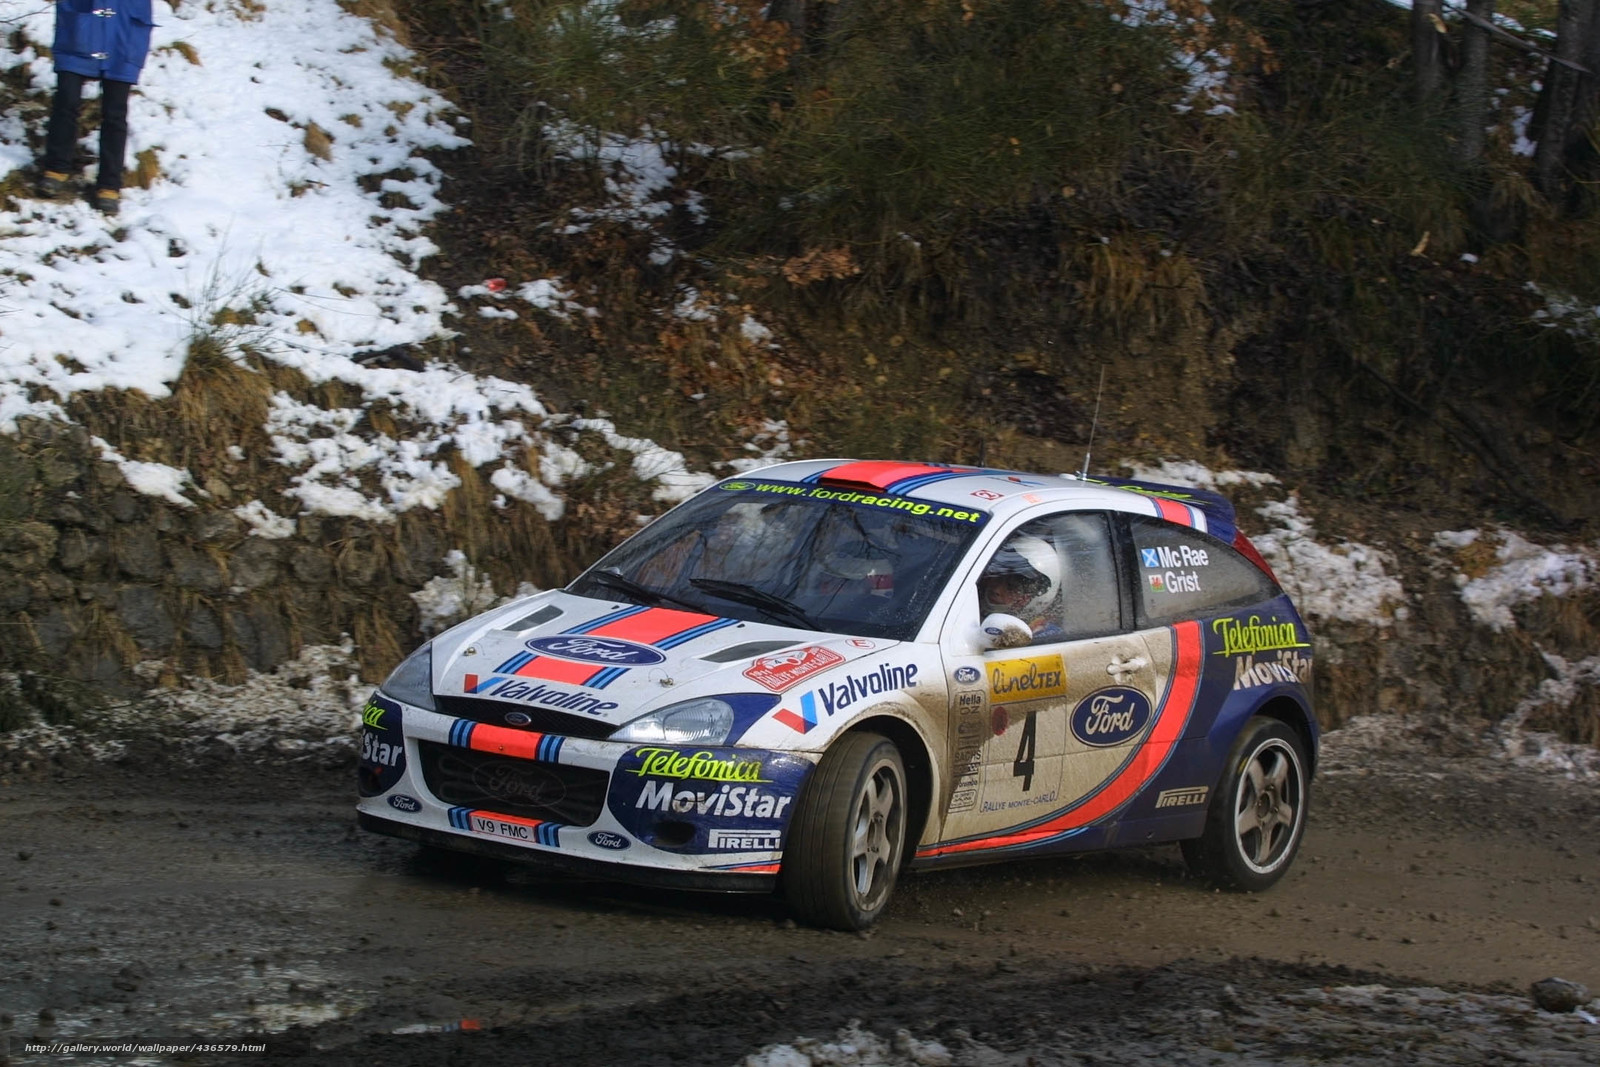 Download wallpaper wrc 2001 ford focus free desktop wallpaper in the resolution 2160x1440 picture 436579